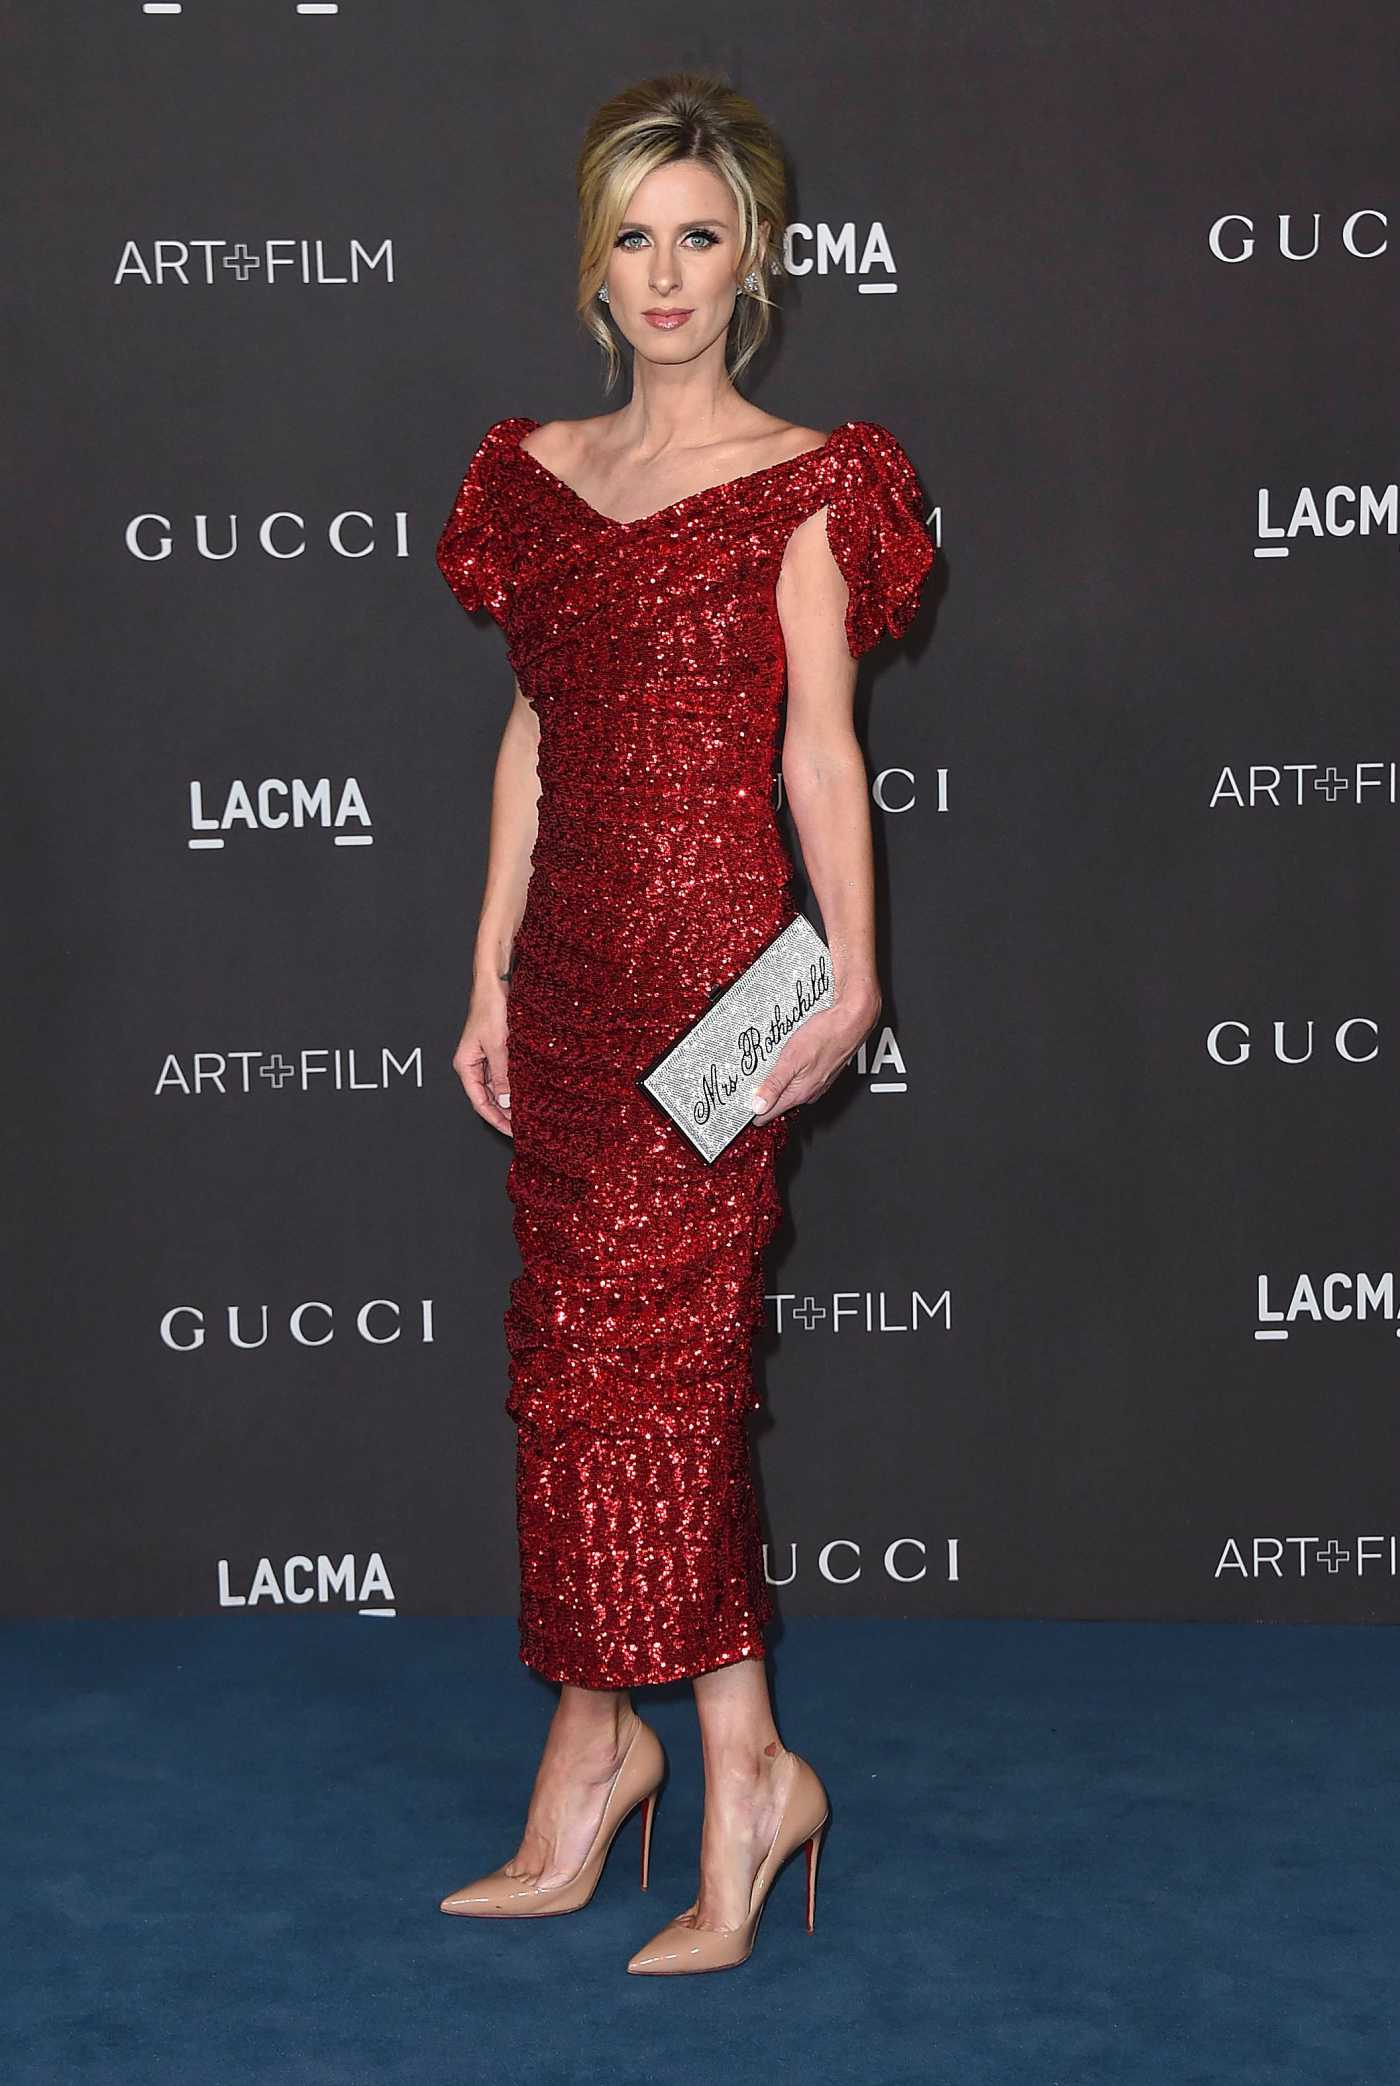 Nicky Hilton Attends 2019 LACMA Art + Film Gala Honoring Betye Saar And Alfonso Cuaron Presented By Gucci in Los Angeles 11/02/2019